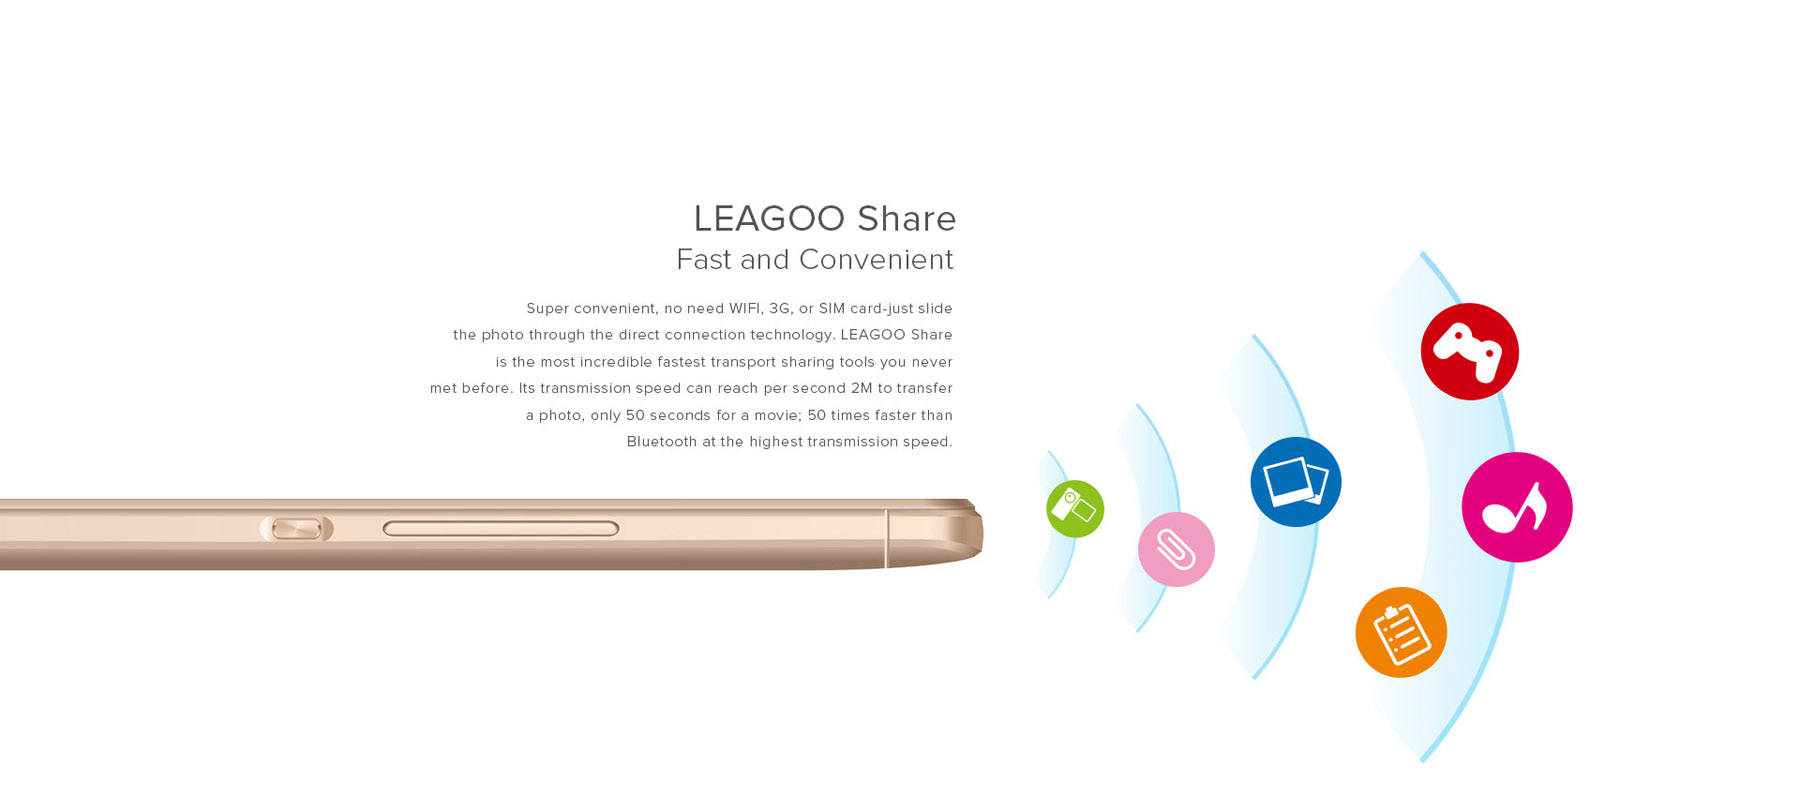 Leagoo Z5 Lte Android 5.1 5.0 inch 4G Smartphone MTK6735 1.0GHz Quad Core 1GB RAM 8GB ROM Gravity Sensor Bluetooth 4.1 GPS